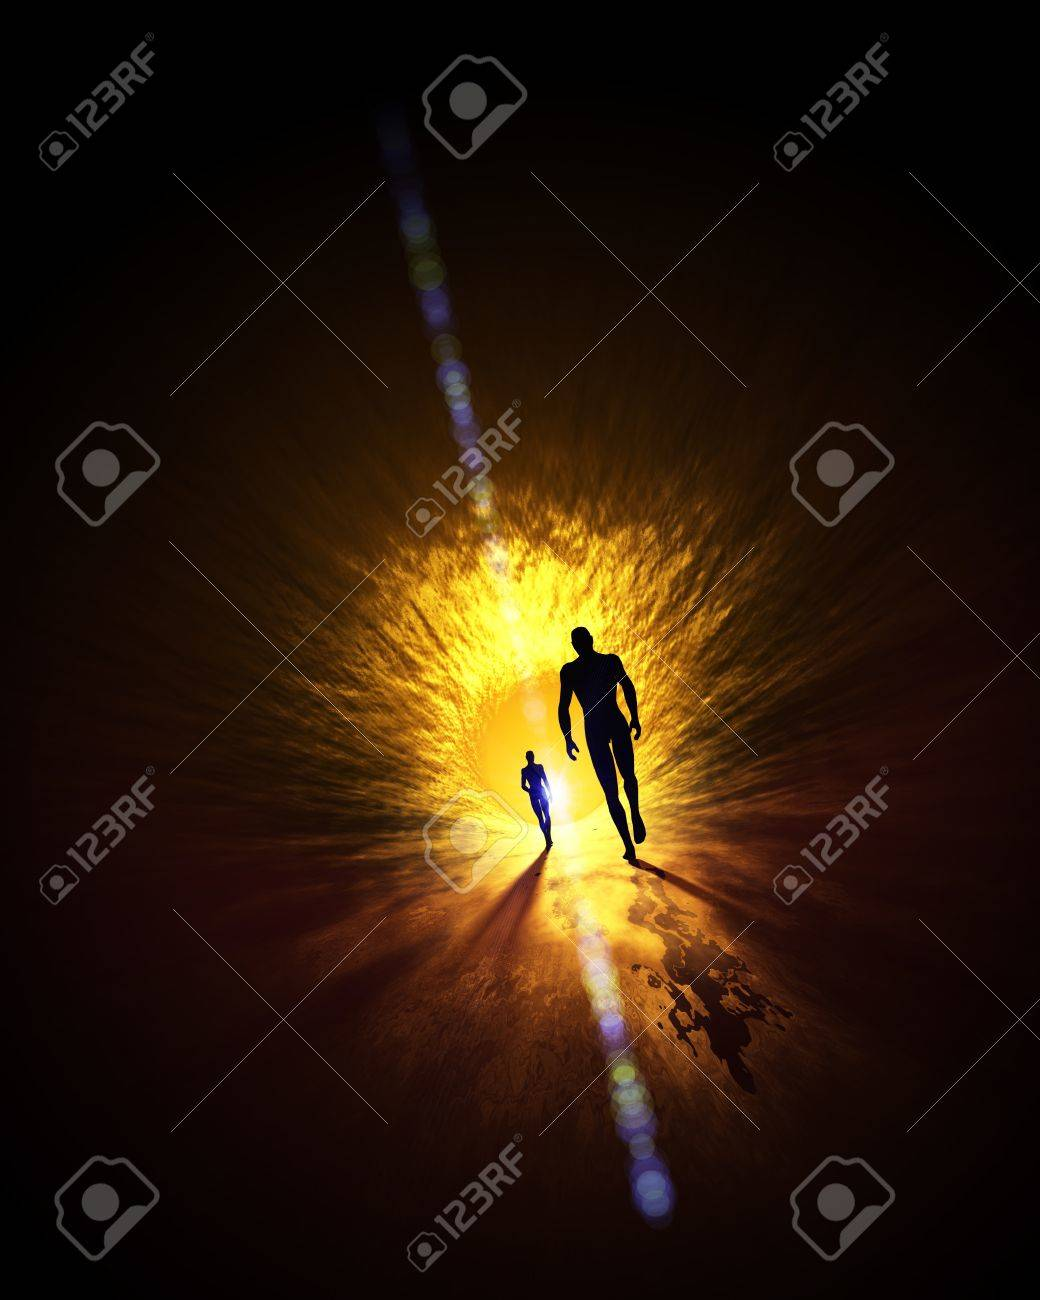 The light at the end of the tunnel Stock Photo - 14401521